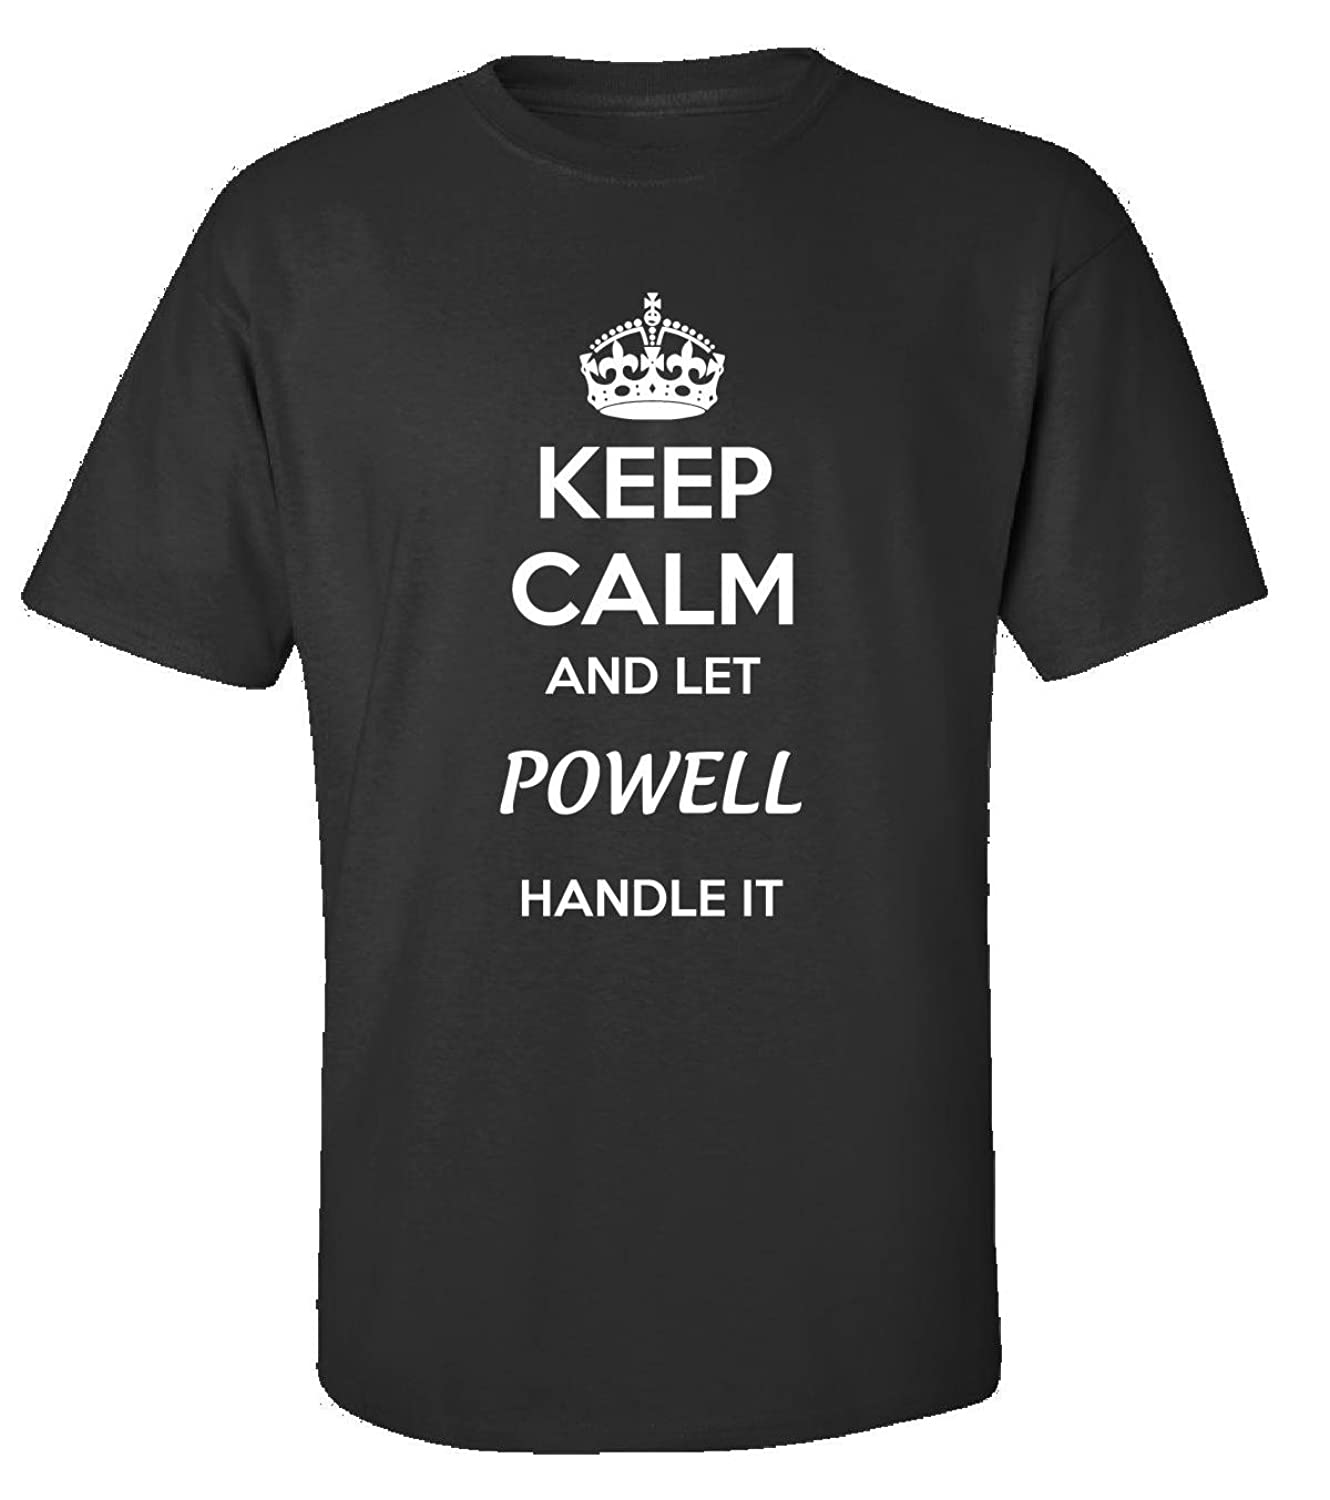 Keep Calm And Let Powell Handle It - Adult Shirt